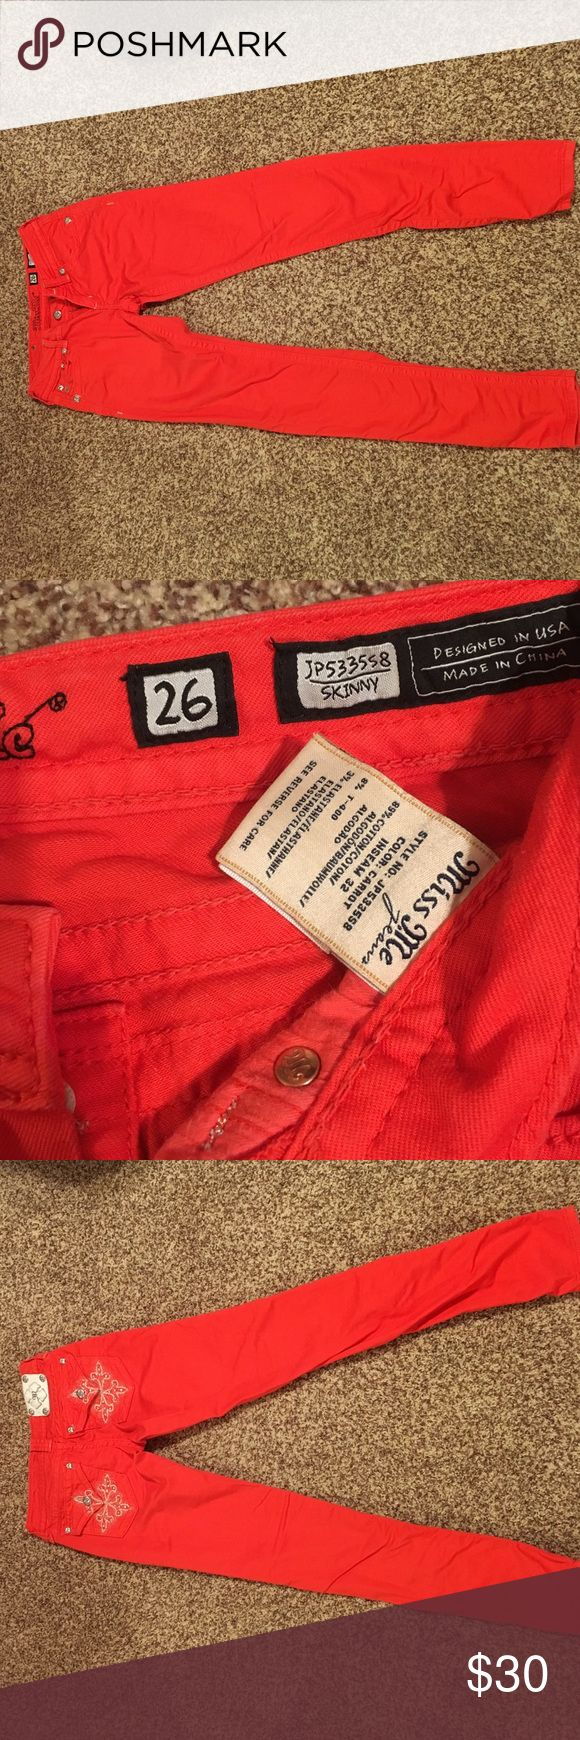 Miss Me Skinny Jeans Coral colored size 26 skinny jeans, lightly worn. Miss Me Jeans Skinny